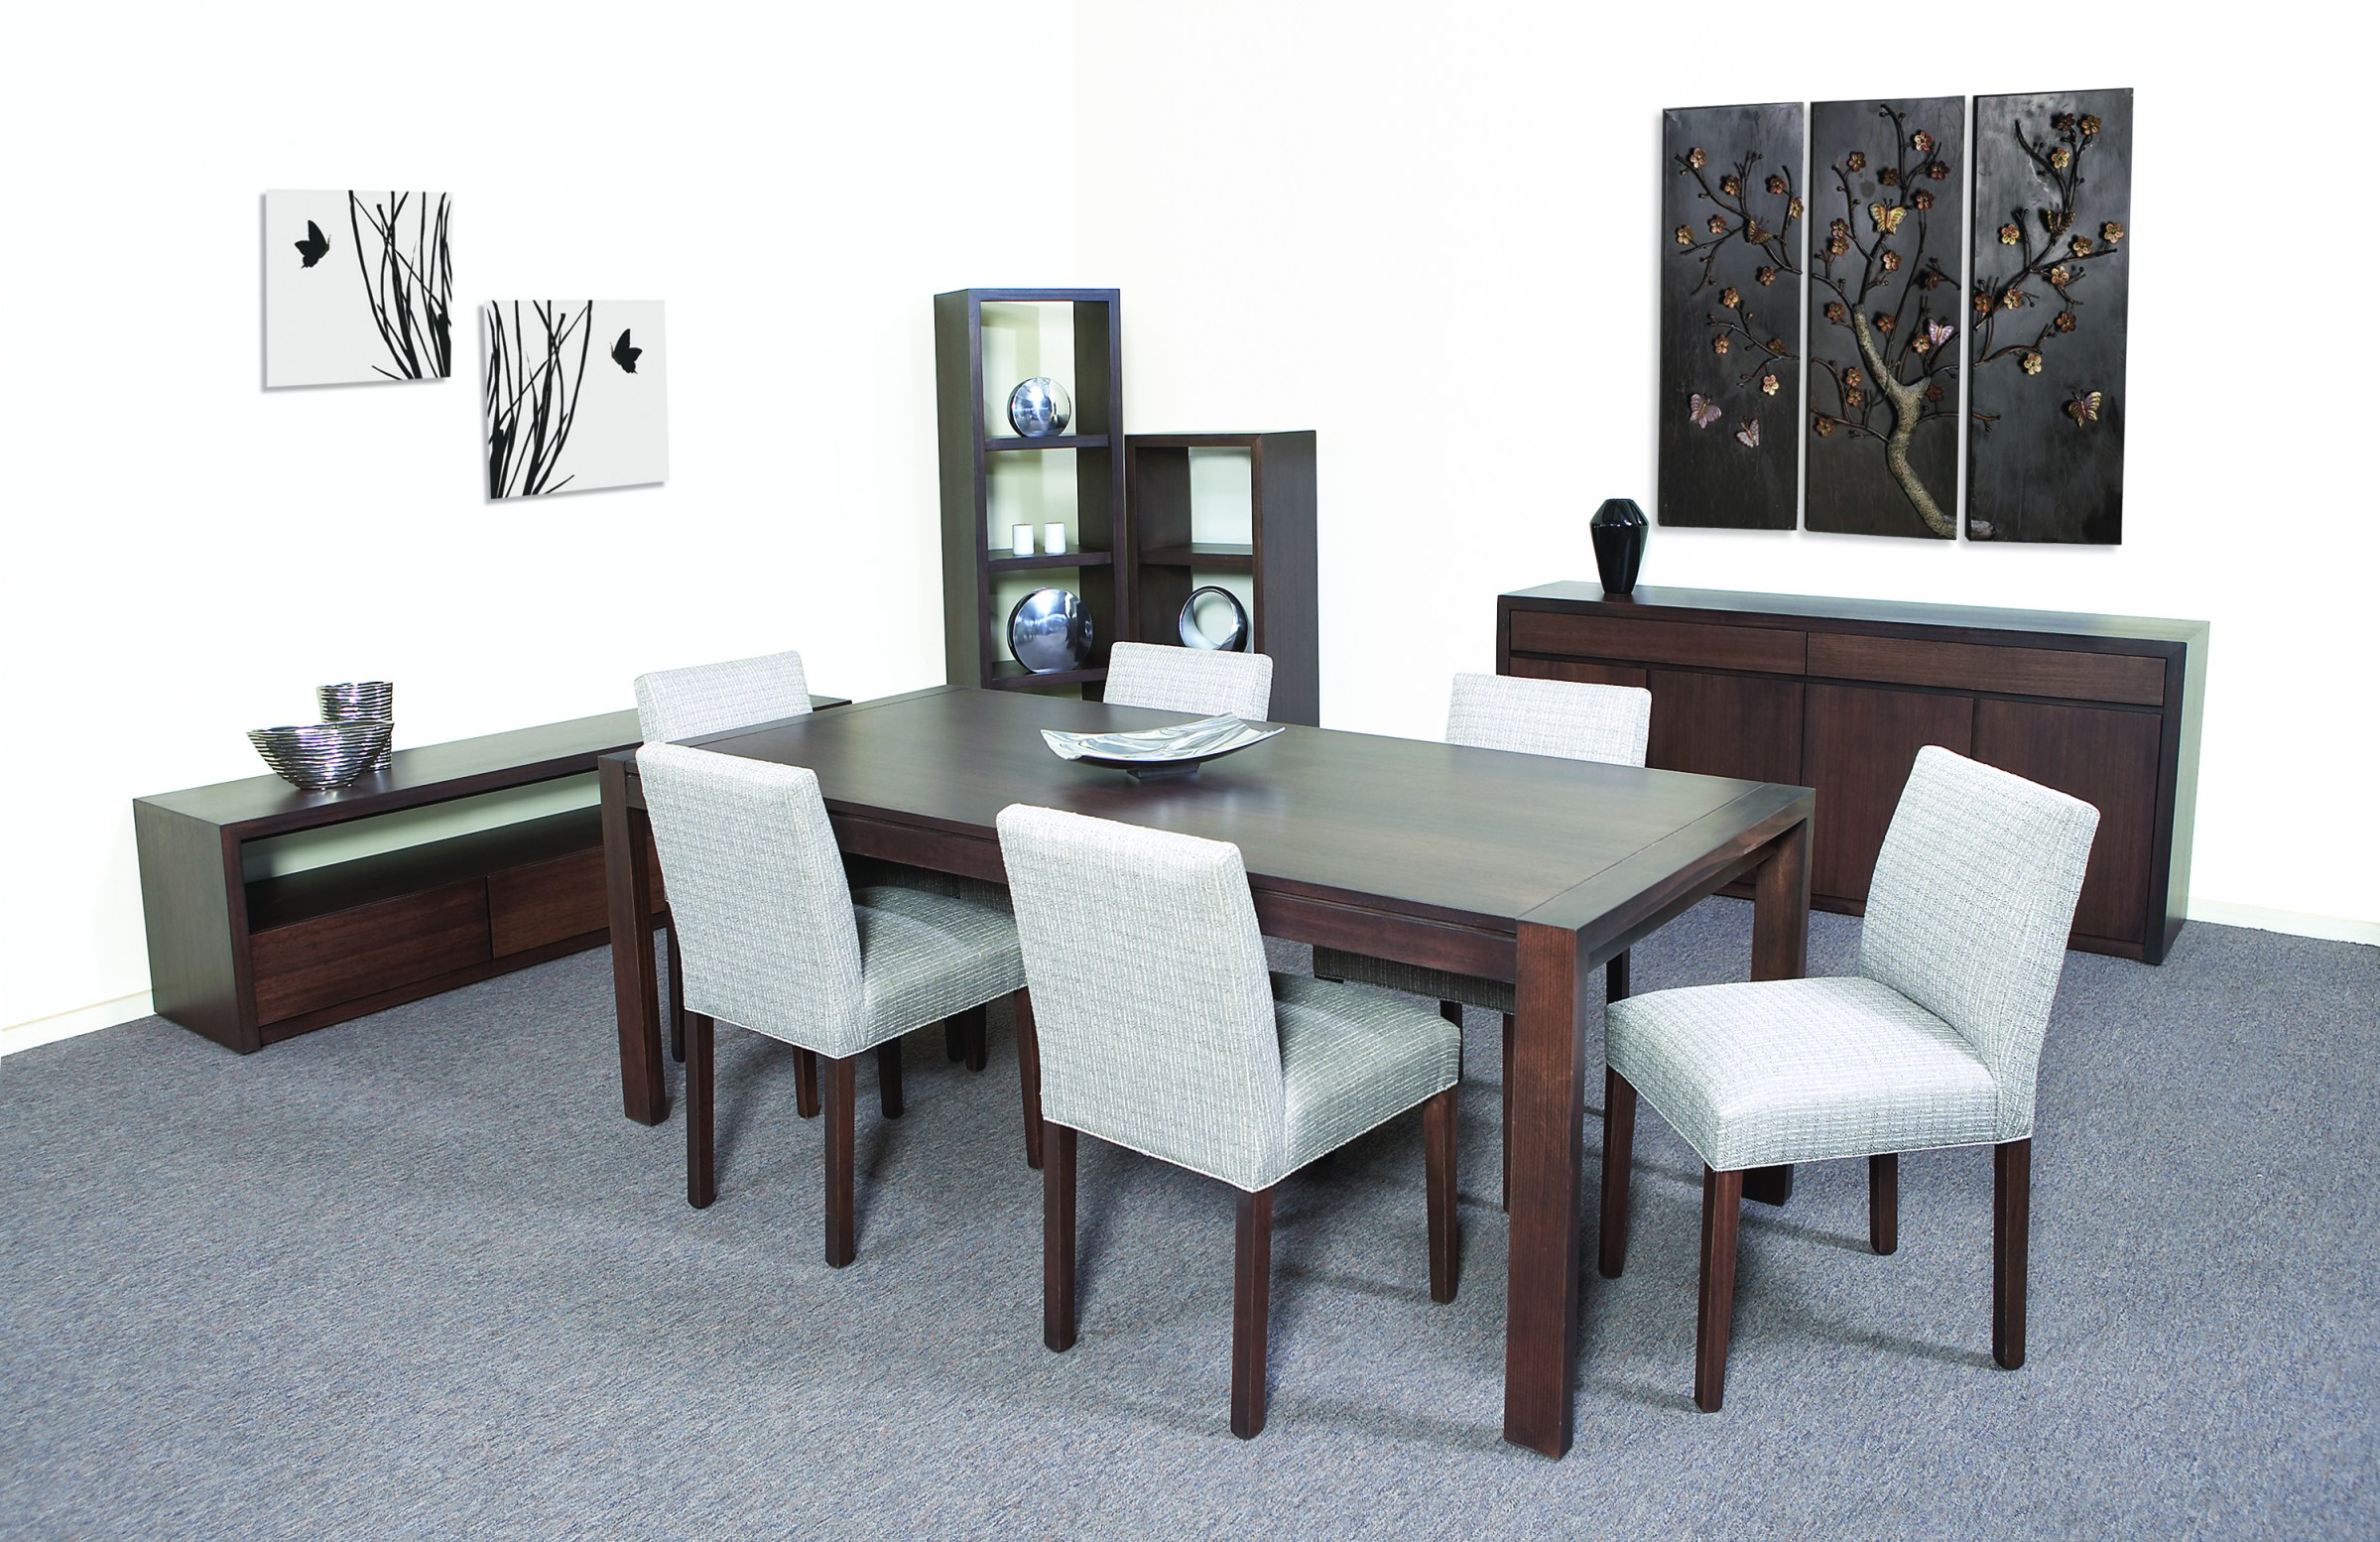 Photograph of Astra Furniture Capri dining and occasional range crafted from solid Tasmanian Oak